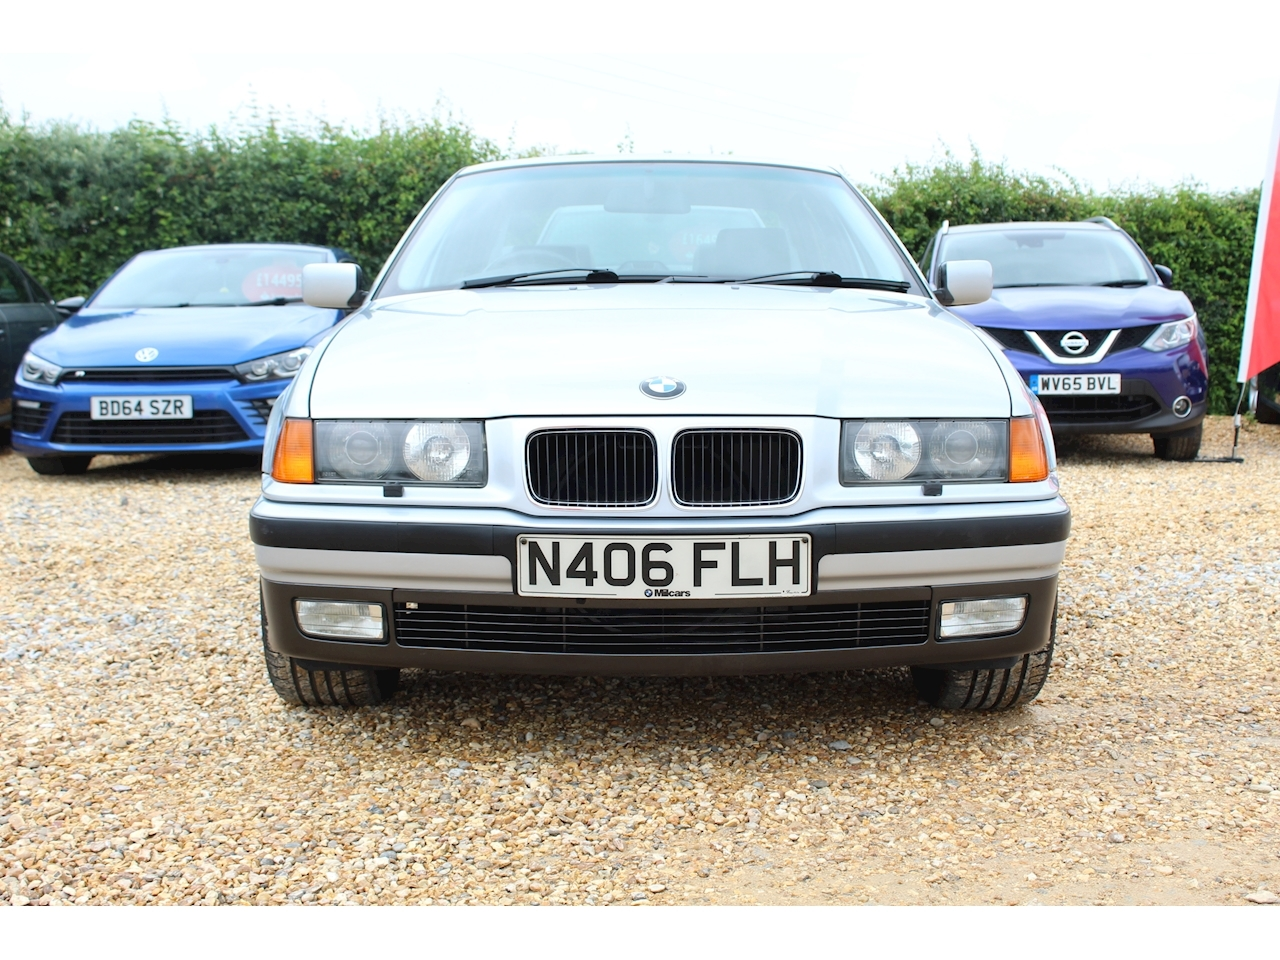 BMW 3 Series 328I Se 2.8 4dr Saloon Automatic Petrol